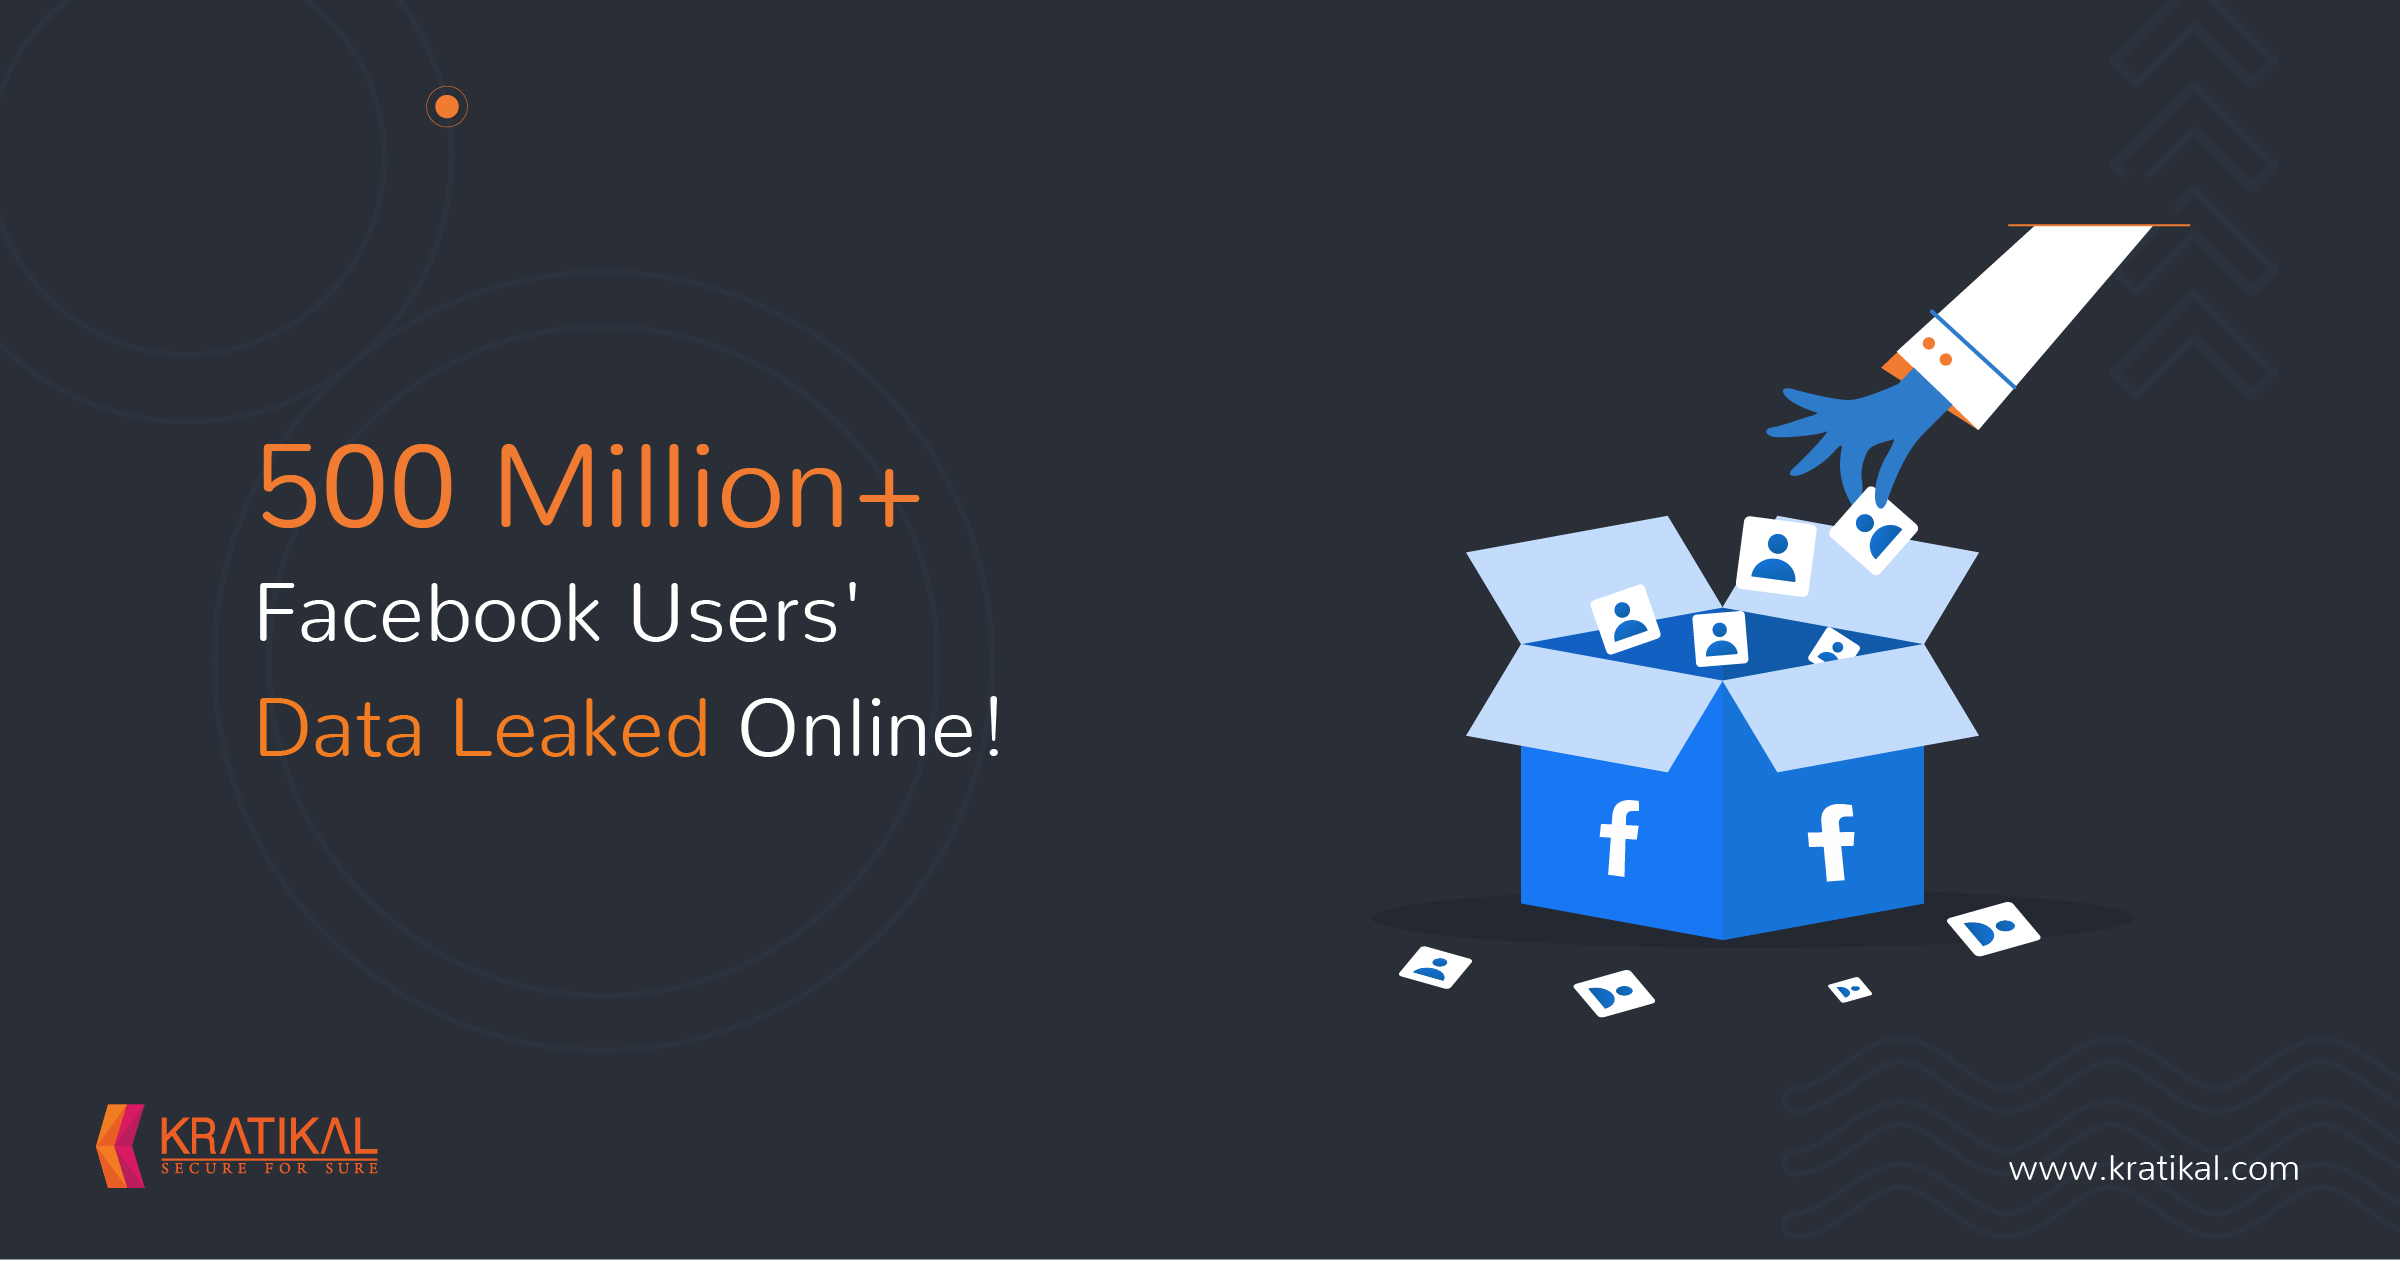 500 Million+ Facebook Users' Data Leaked Online!